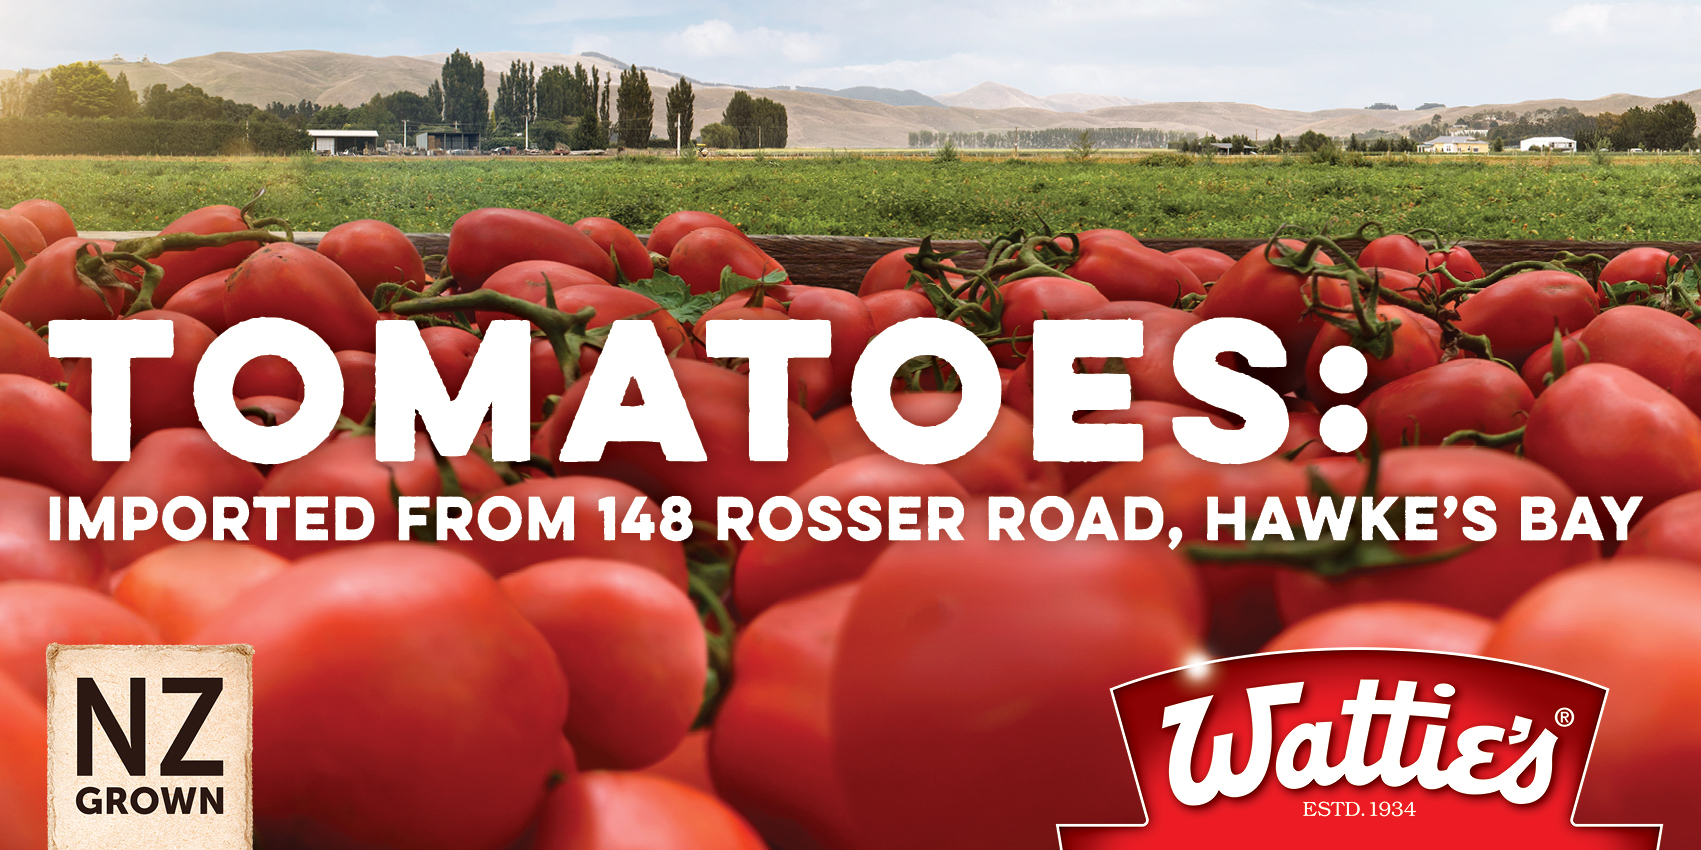 WATTIE'S NZ GROWN   Reinforcing the deep NZ heritage of an iconic brand